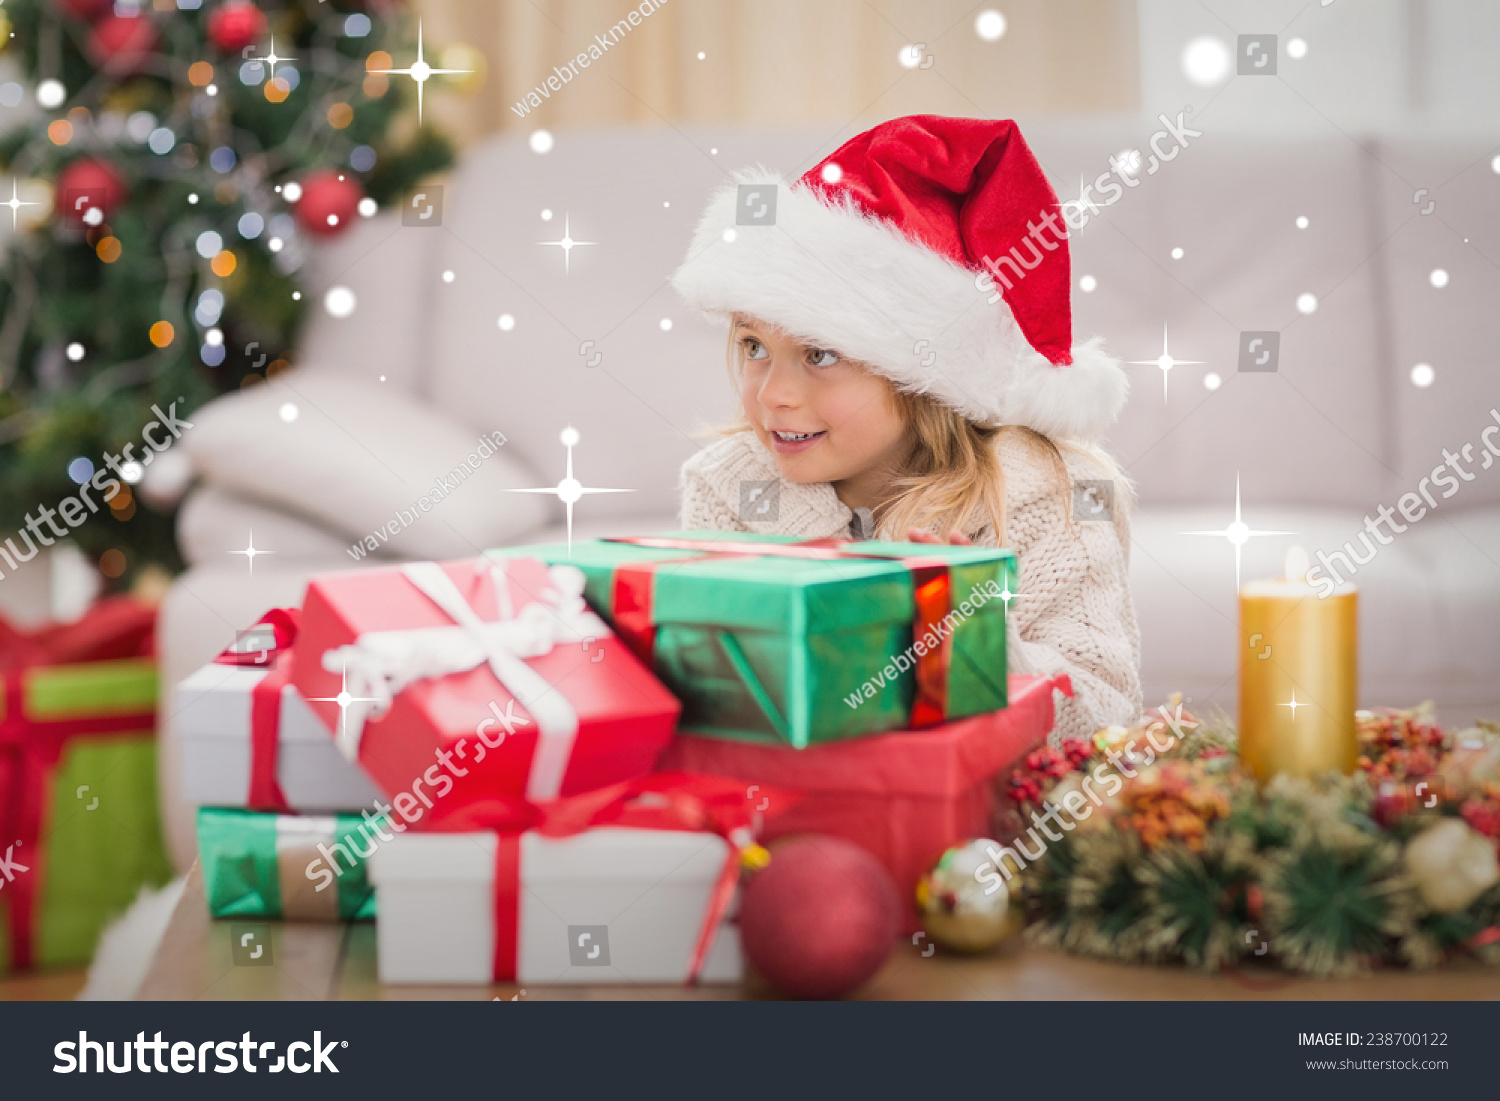 Cute Little Girl Surrounded By Christmas Stock Photo 238700122 ...